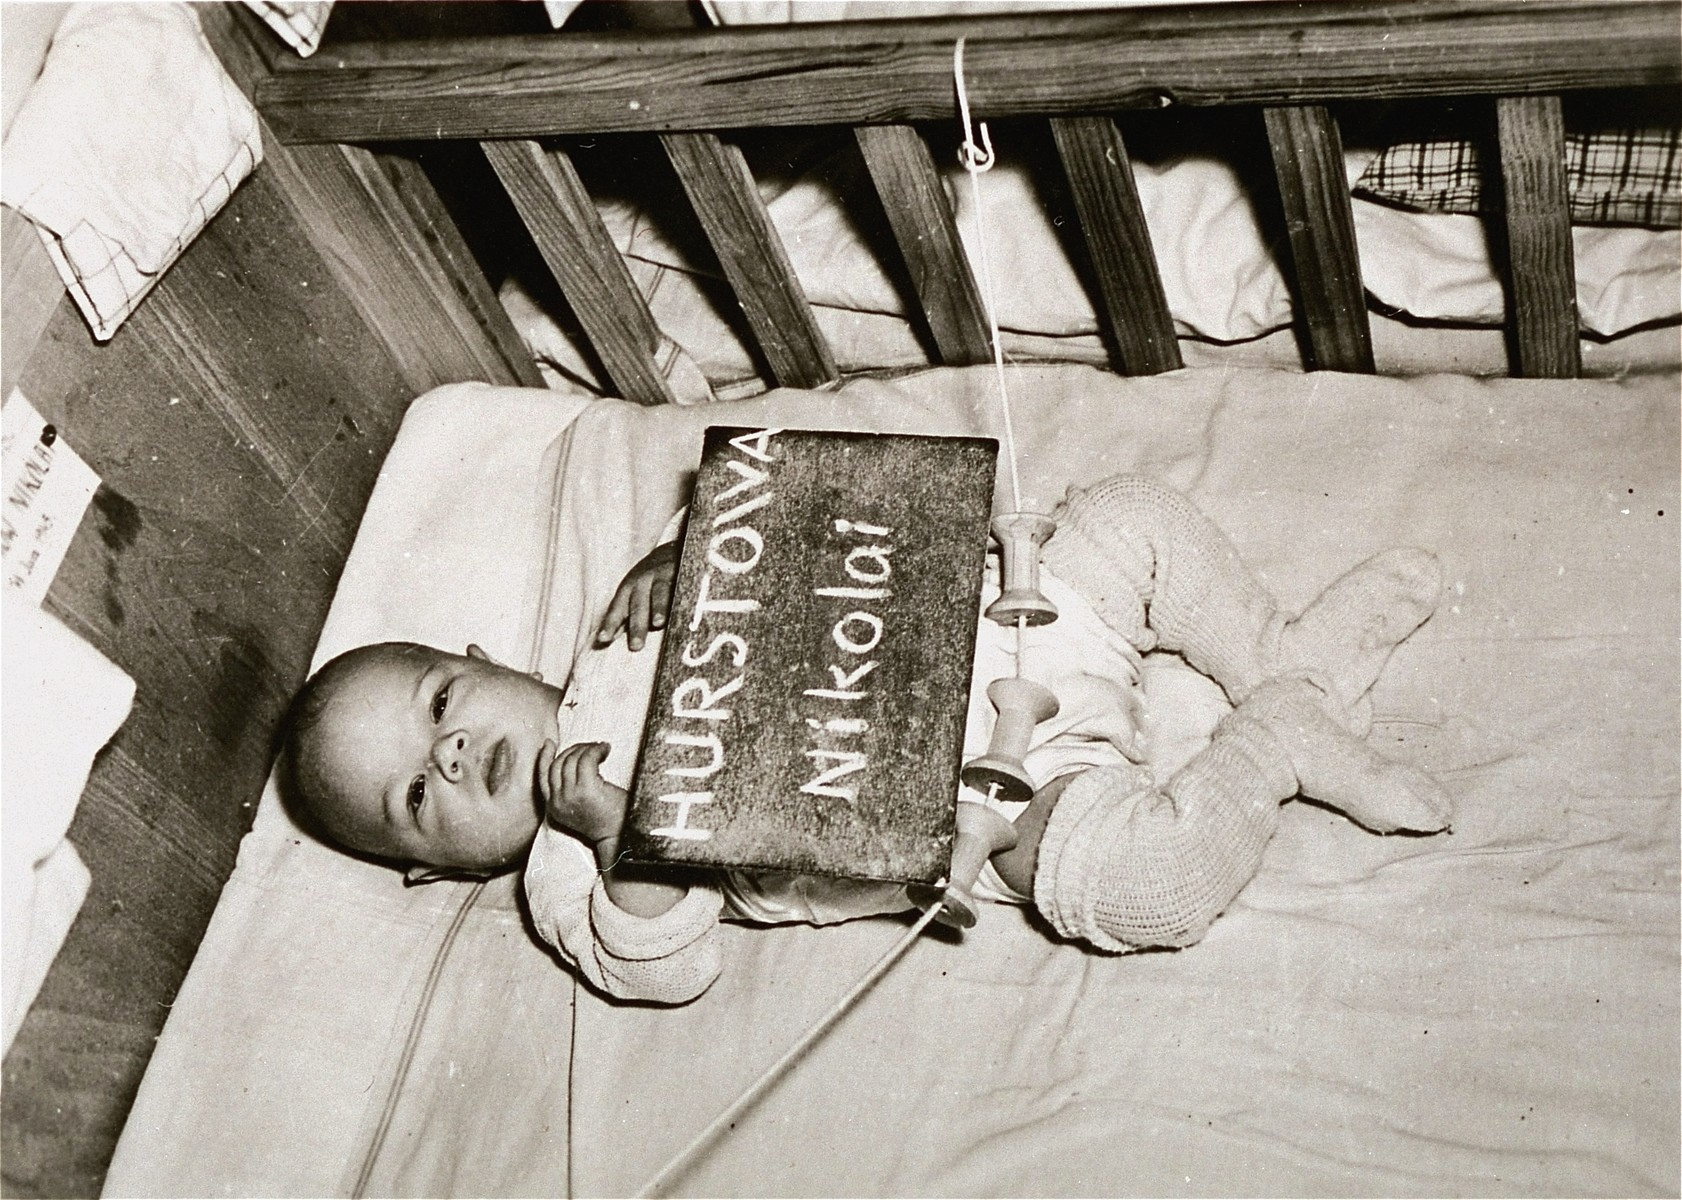 Infant Nikolai Hurstowa with a name card intended to help any of his surviving family members locate him at the Kloster Indersdorf DP camp.  This photograph was published in newspapers to facilitate reuniting the family.